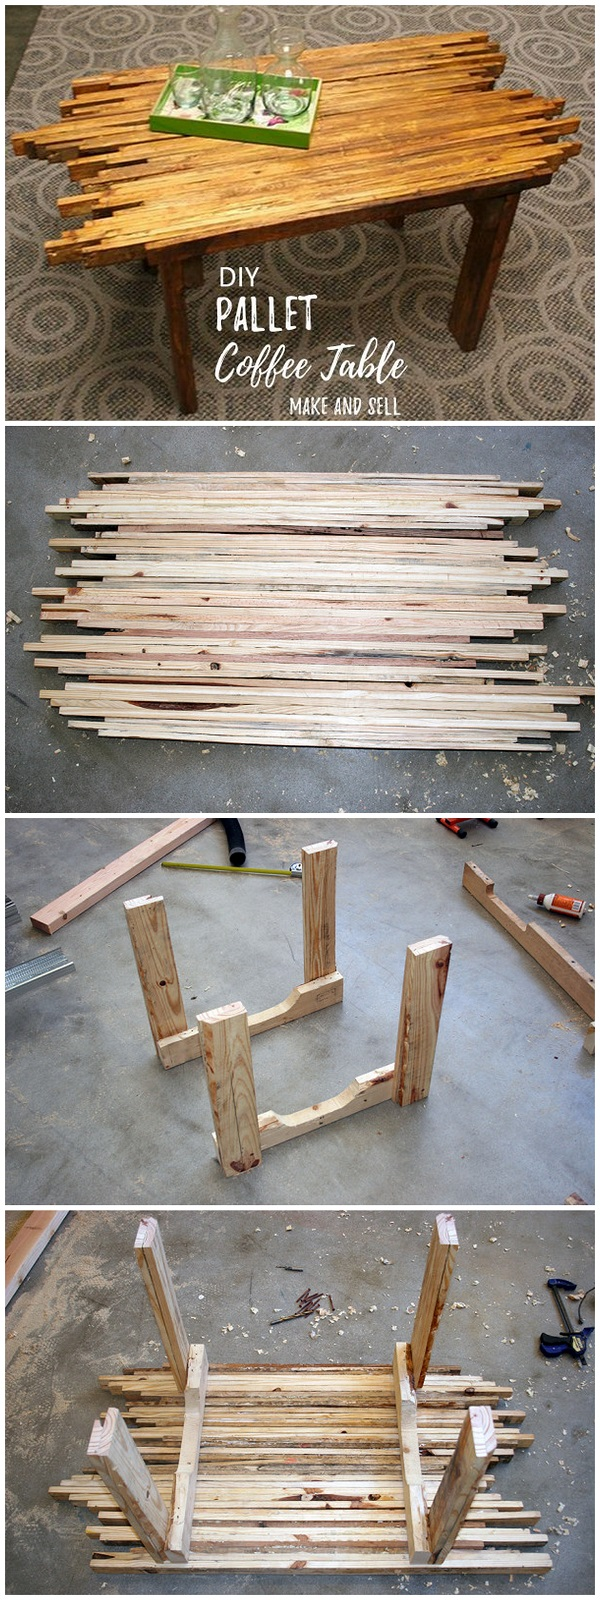 Check out this easy idea on how to make a #DIY #pallet coffee table that you can make and sell #crafts #homedecor #project